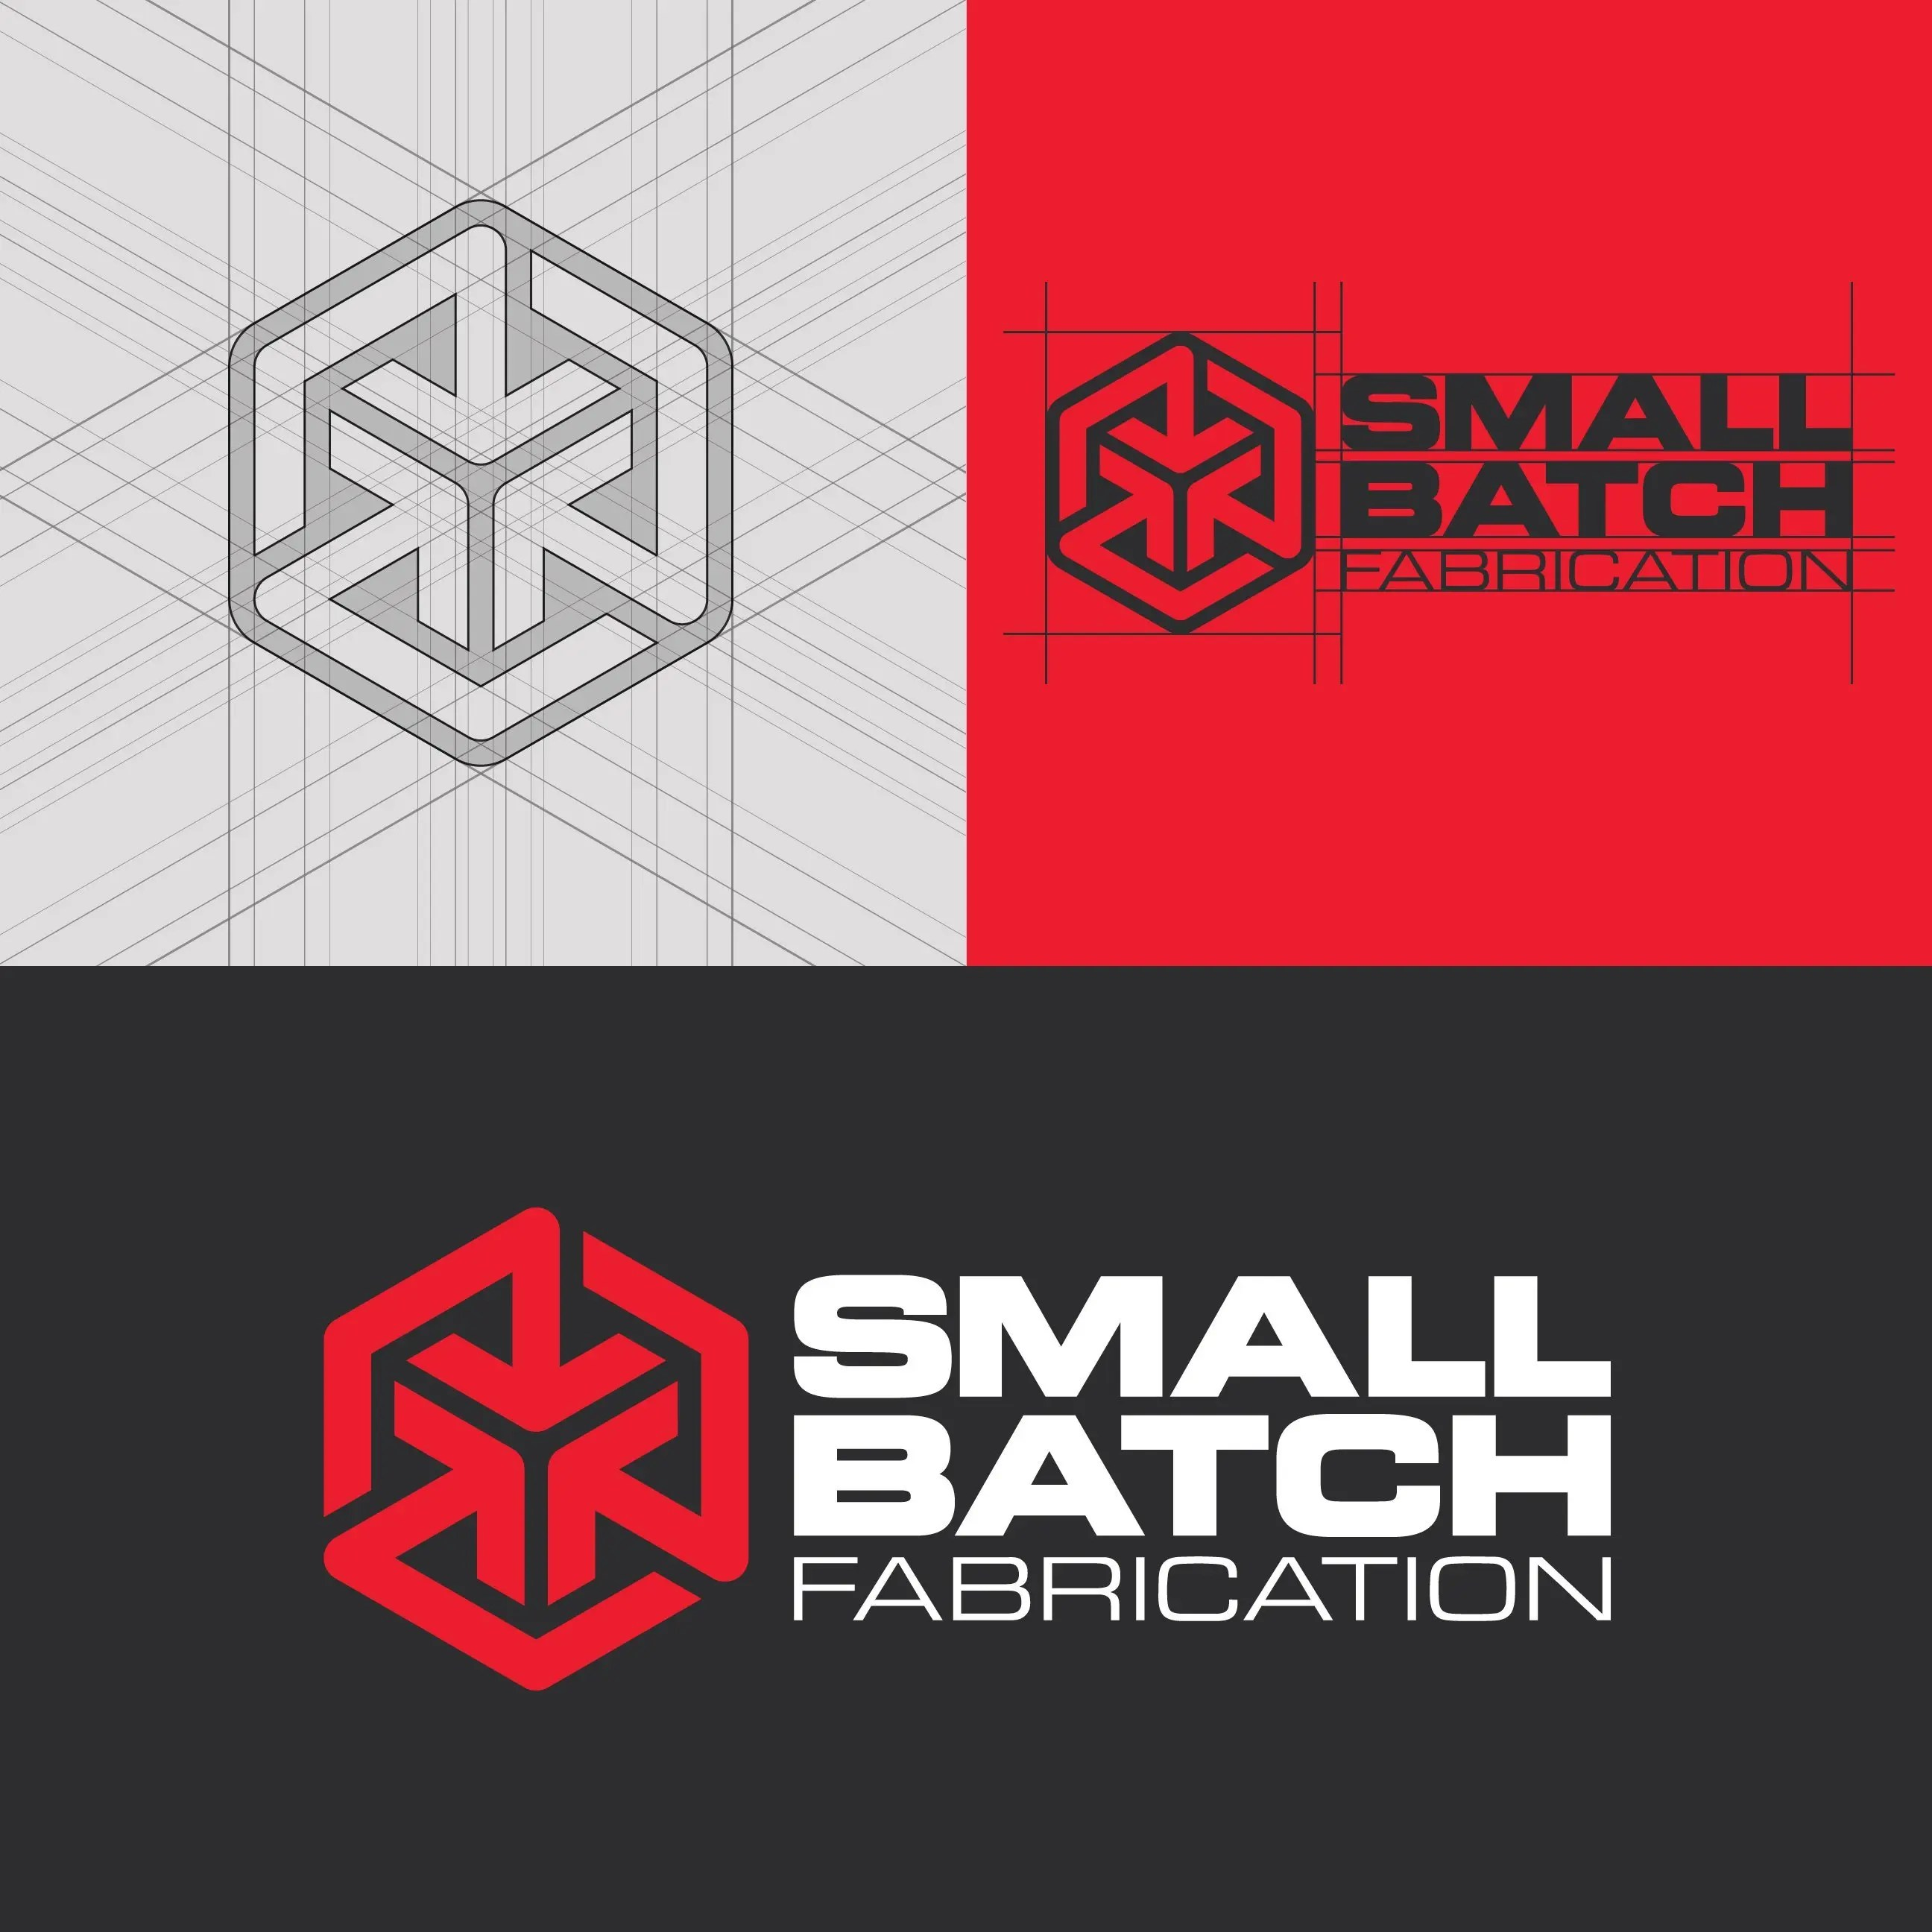 Small Batch Fabrication Logo By Design Cypher